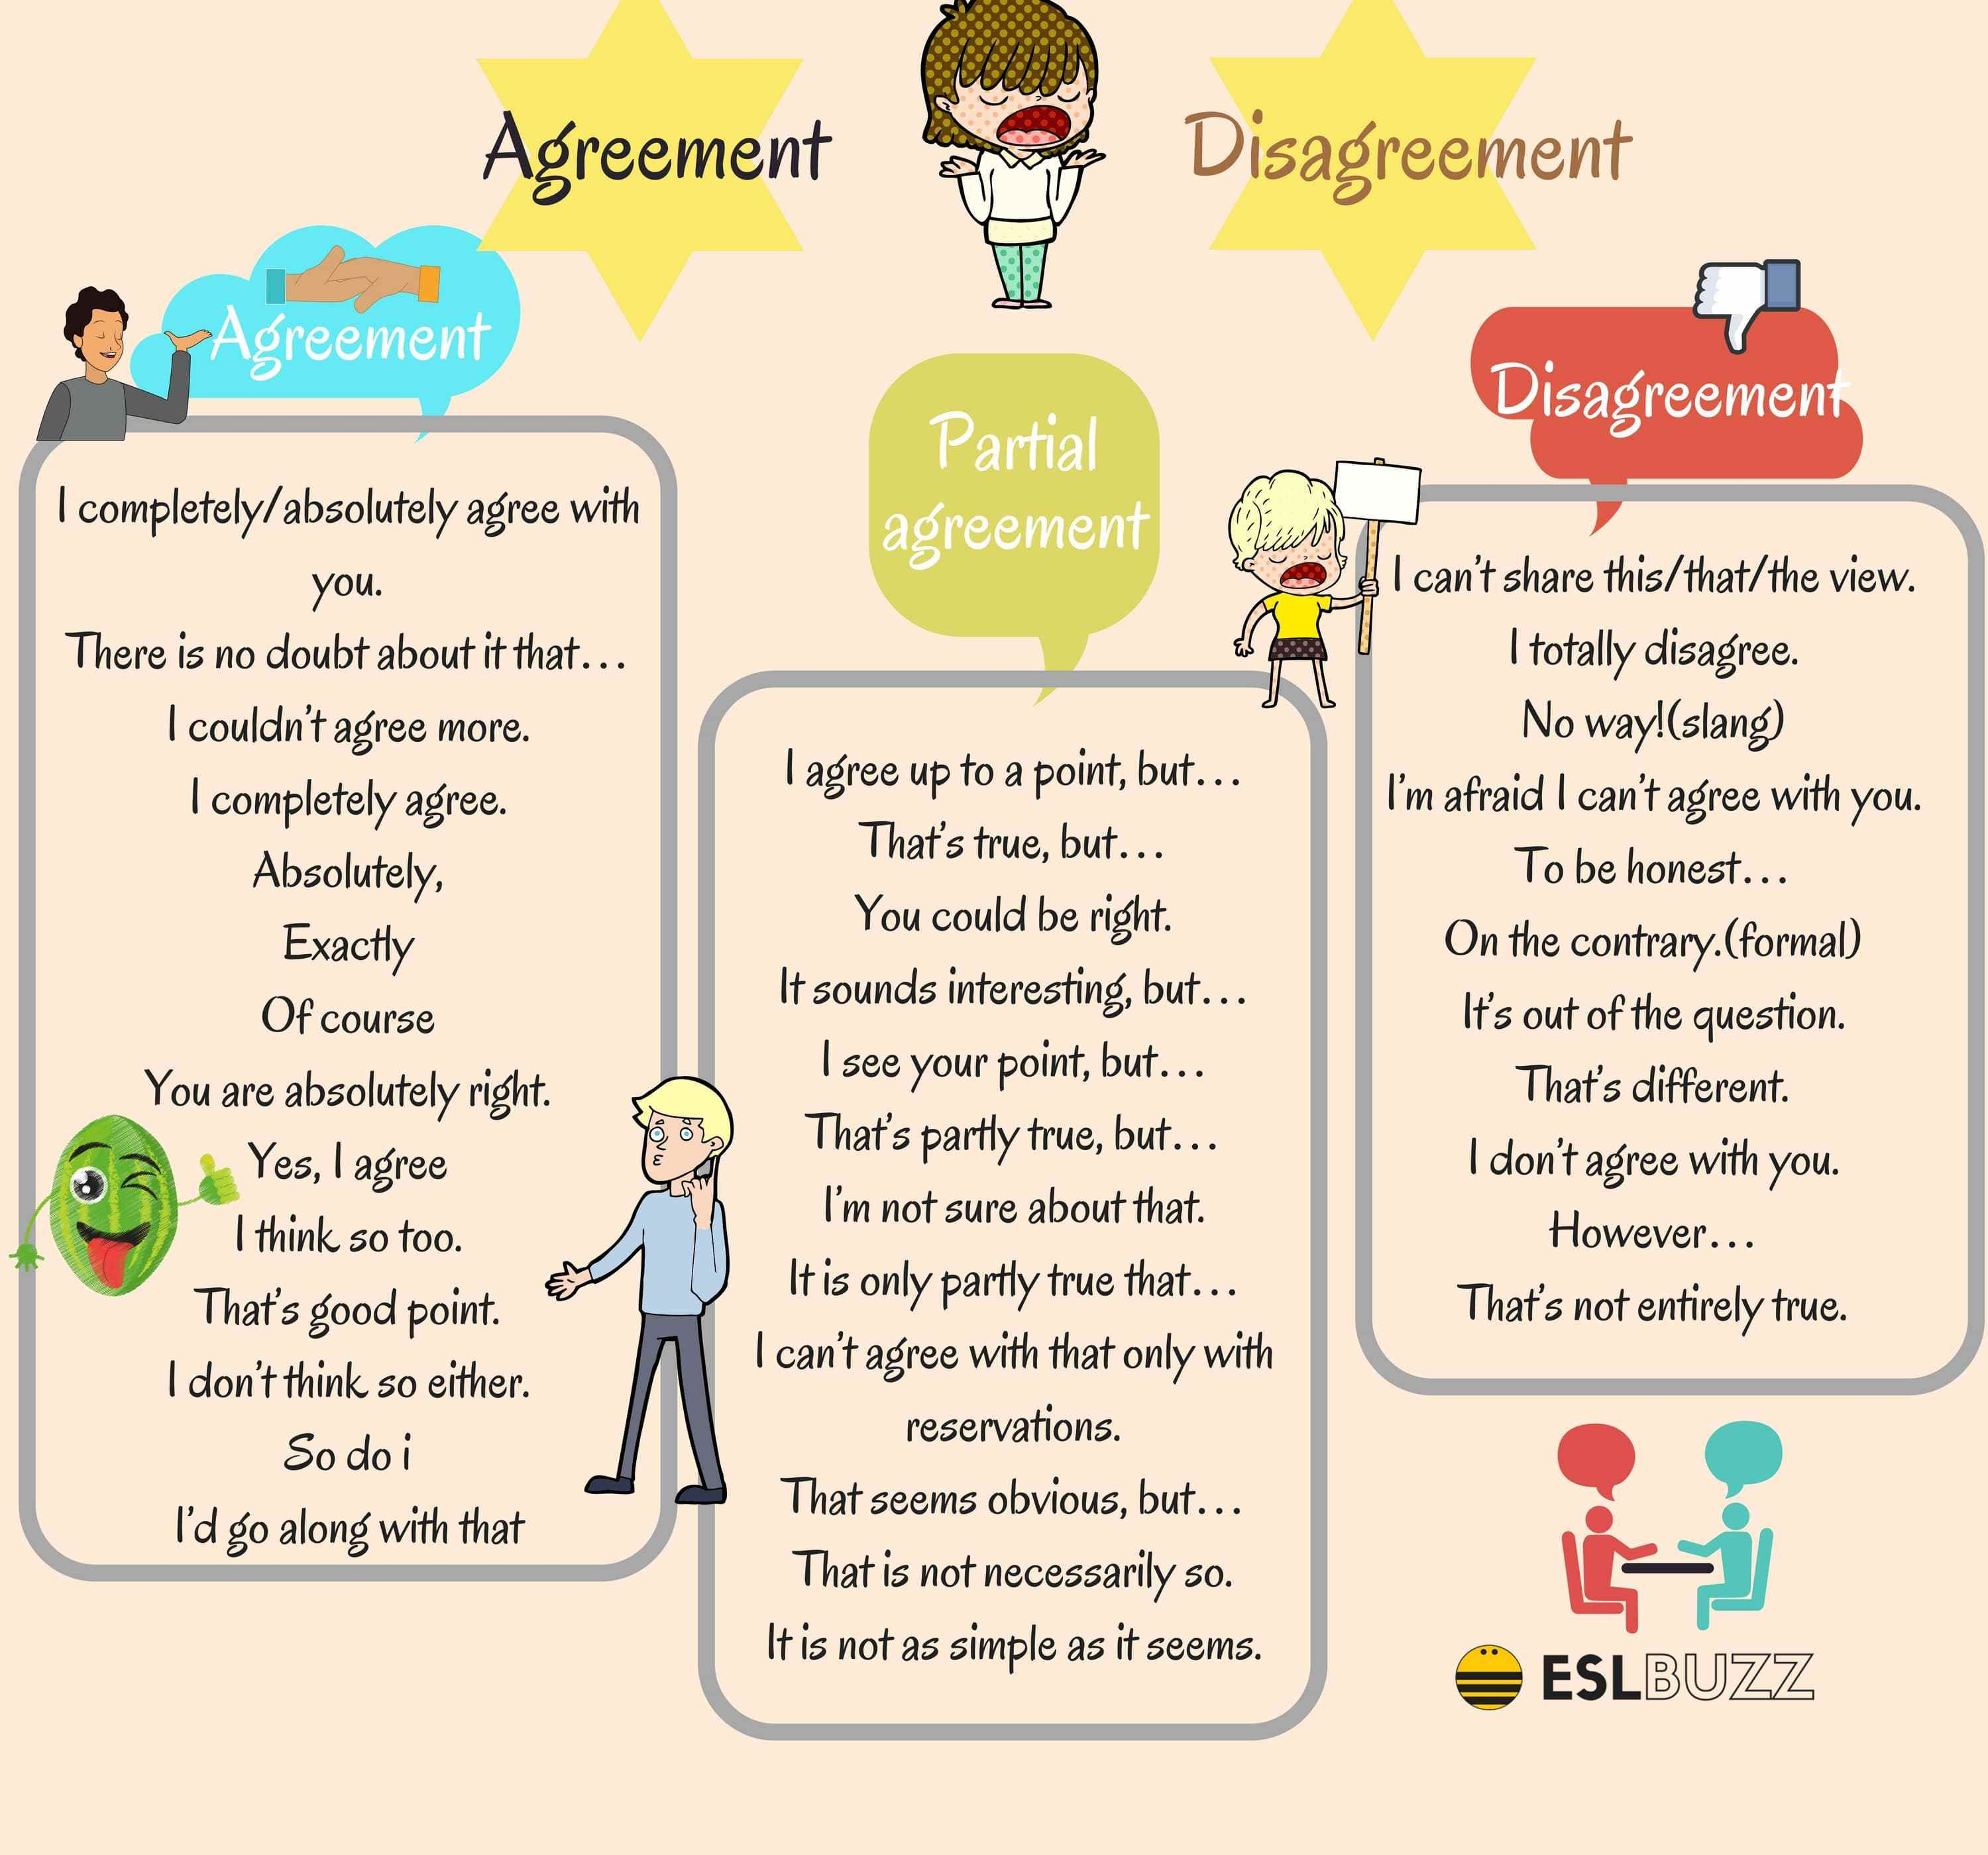 How To Express Agreement Partial Agreement Or Disagreement In